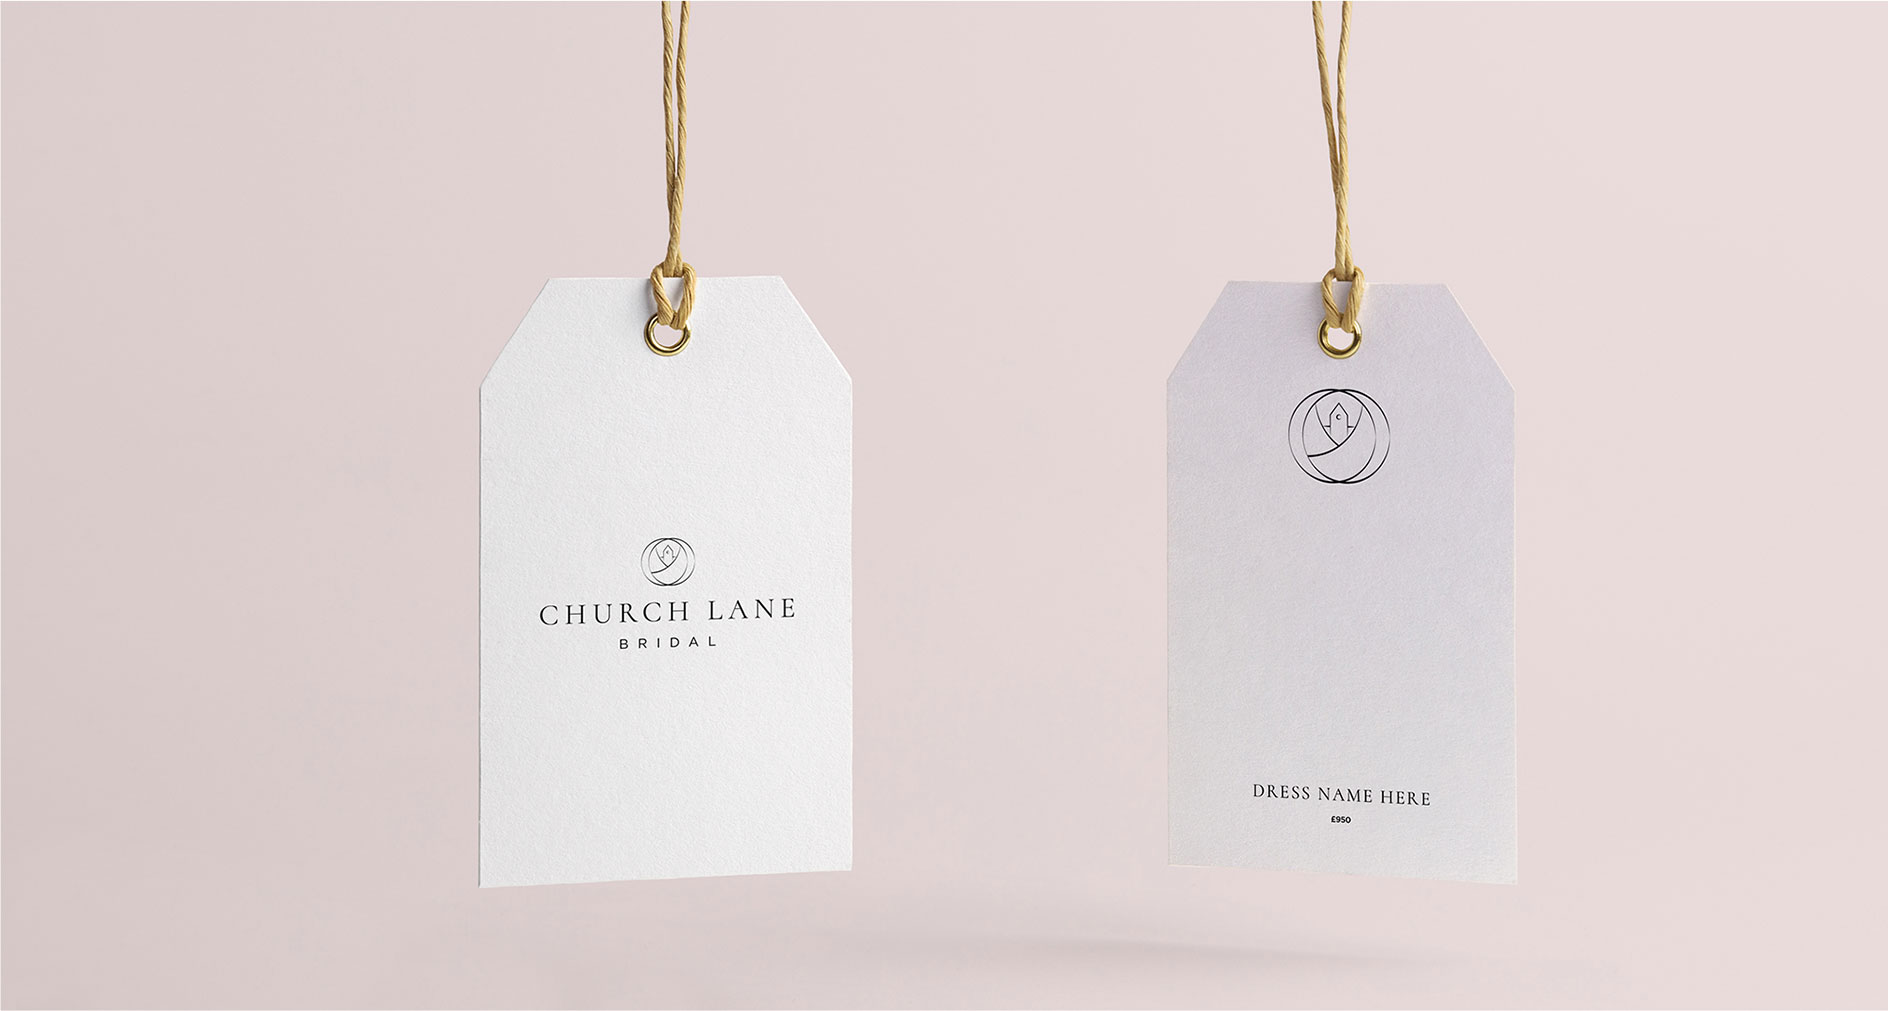 Church Lane Bridal branding labels